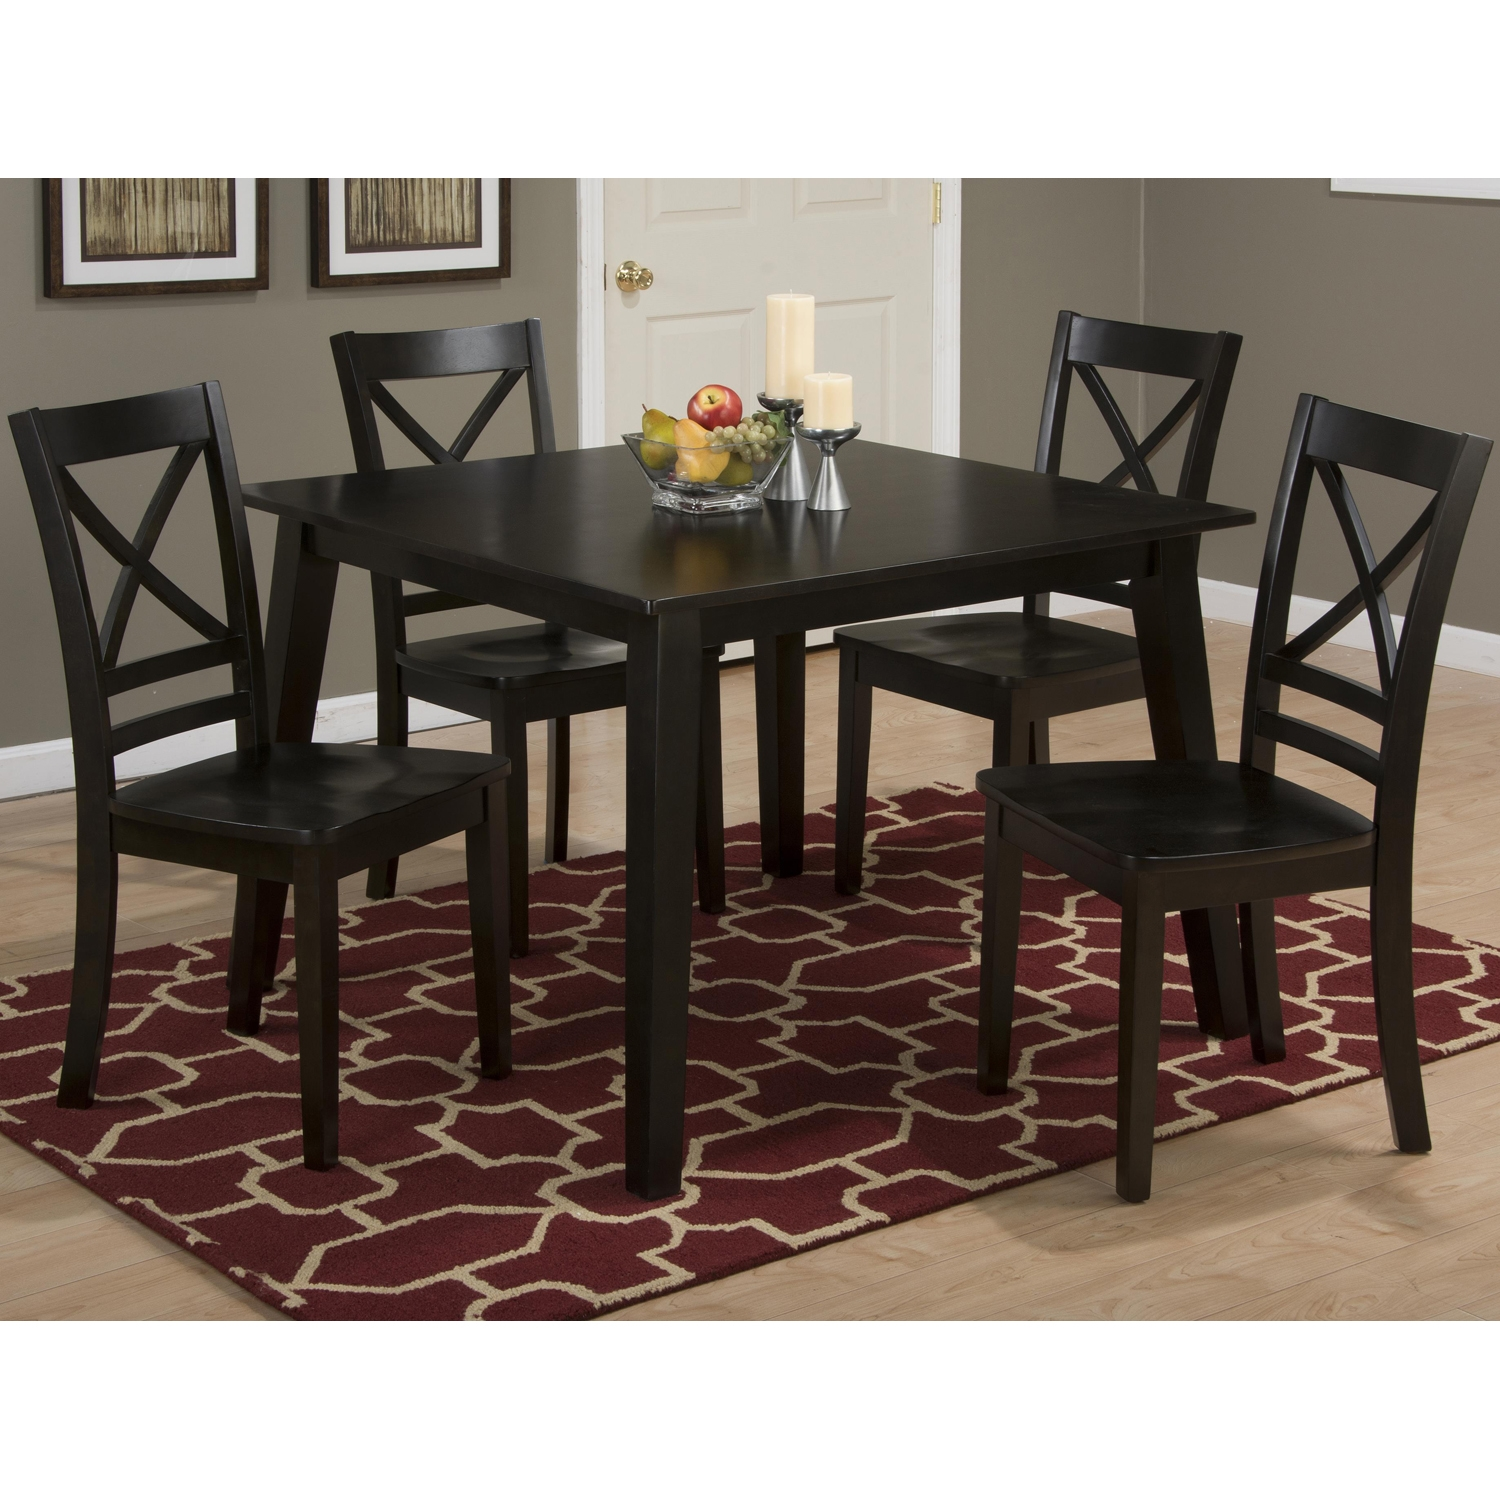 Simplicity Square Dining Table - Espresso - JOFR-552-42